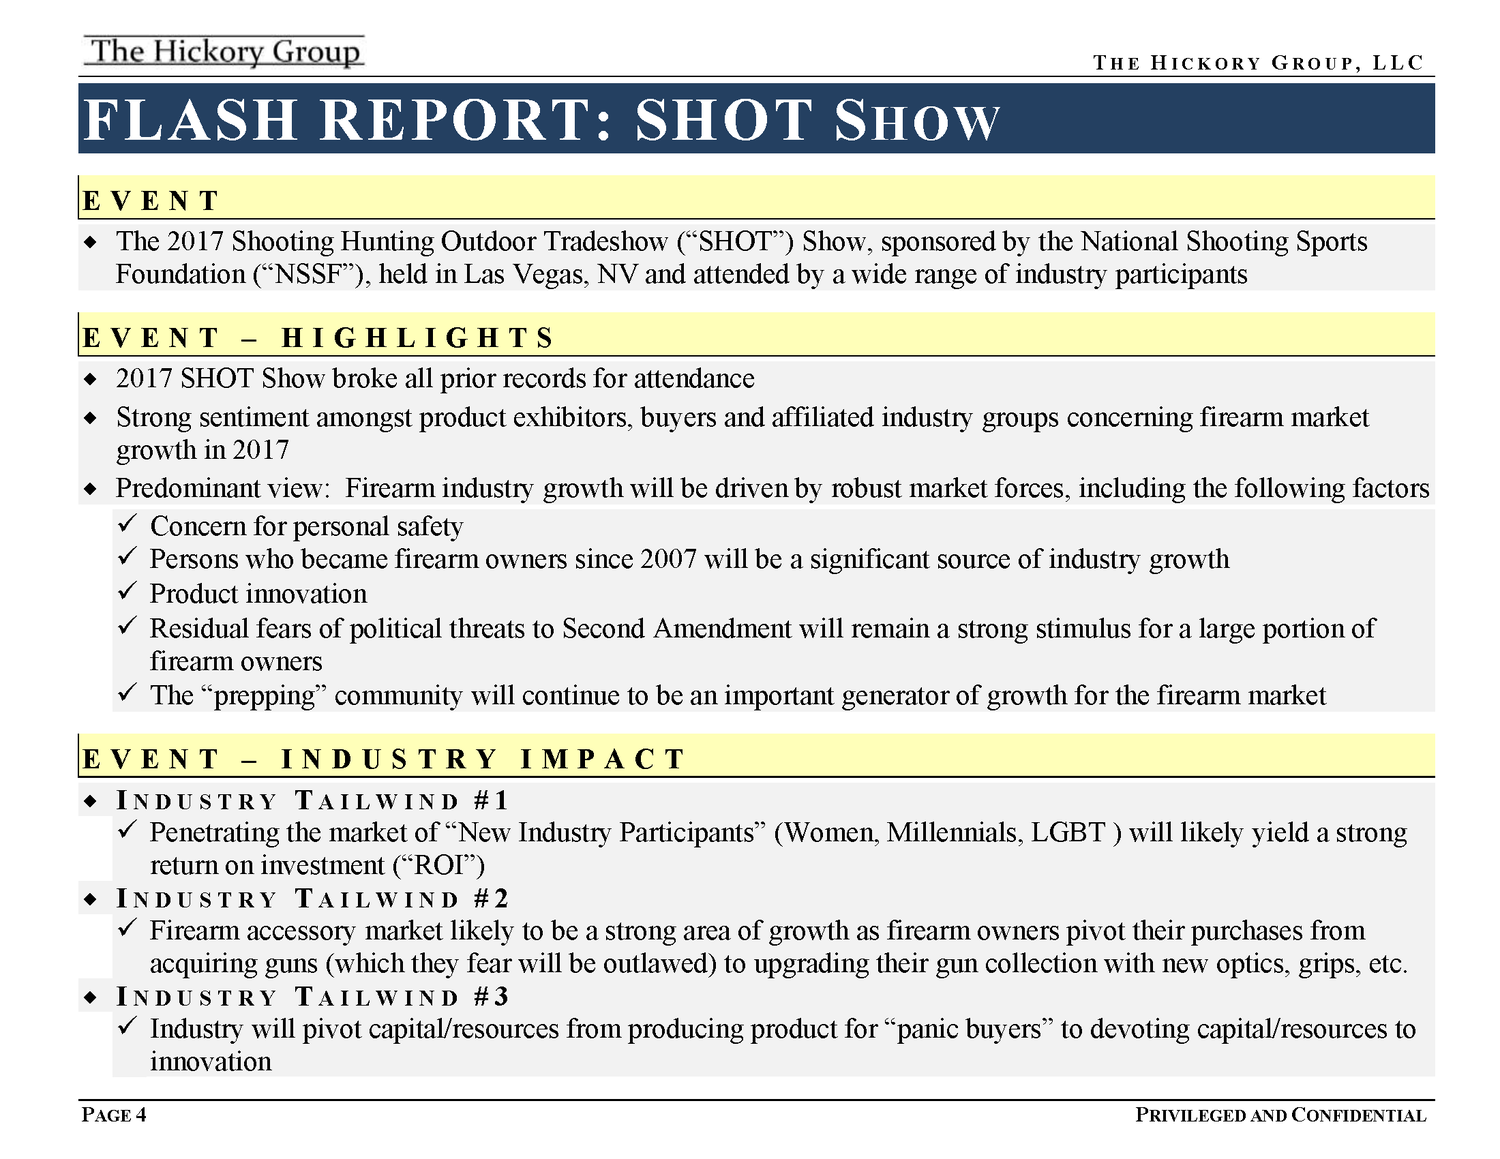 FLASH+REPORT+-+SHOT+SHOW+-+FINAL+(February+3+2017)+Privileged+and+Confidential_Page_4.png